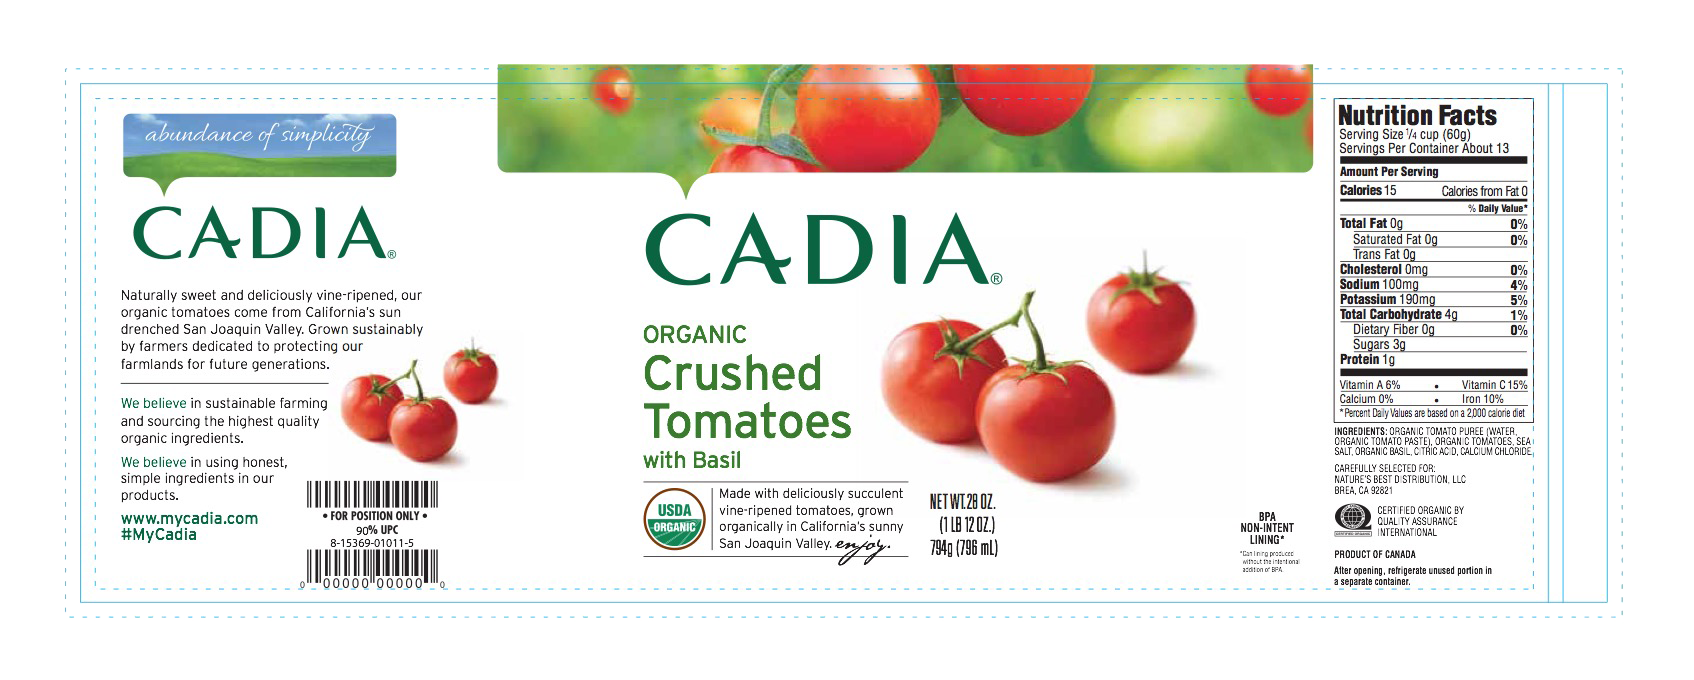 Cadia_Crushed Tomatoes with Basil_r2.png